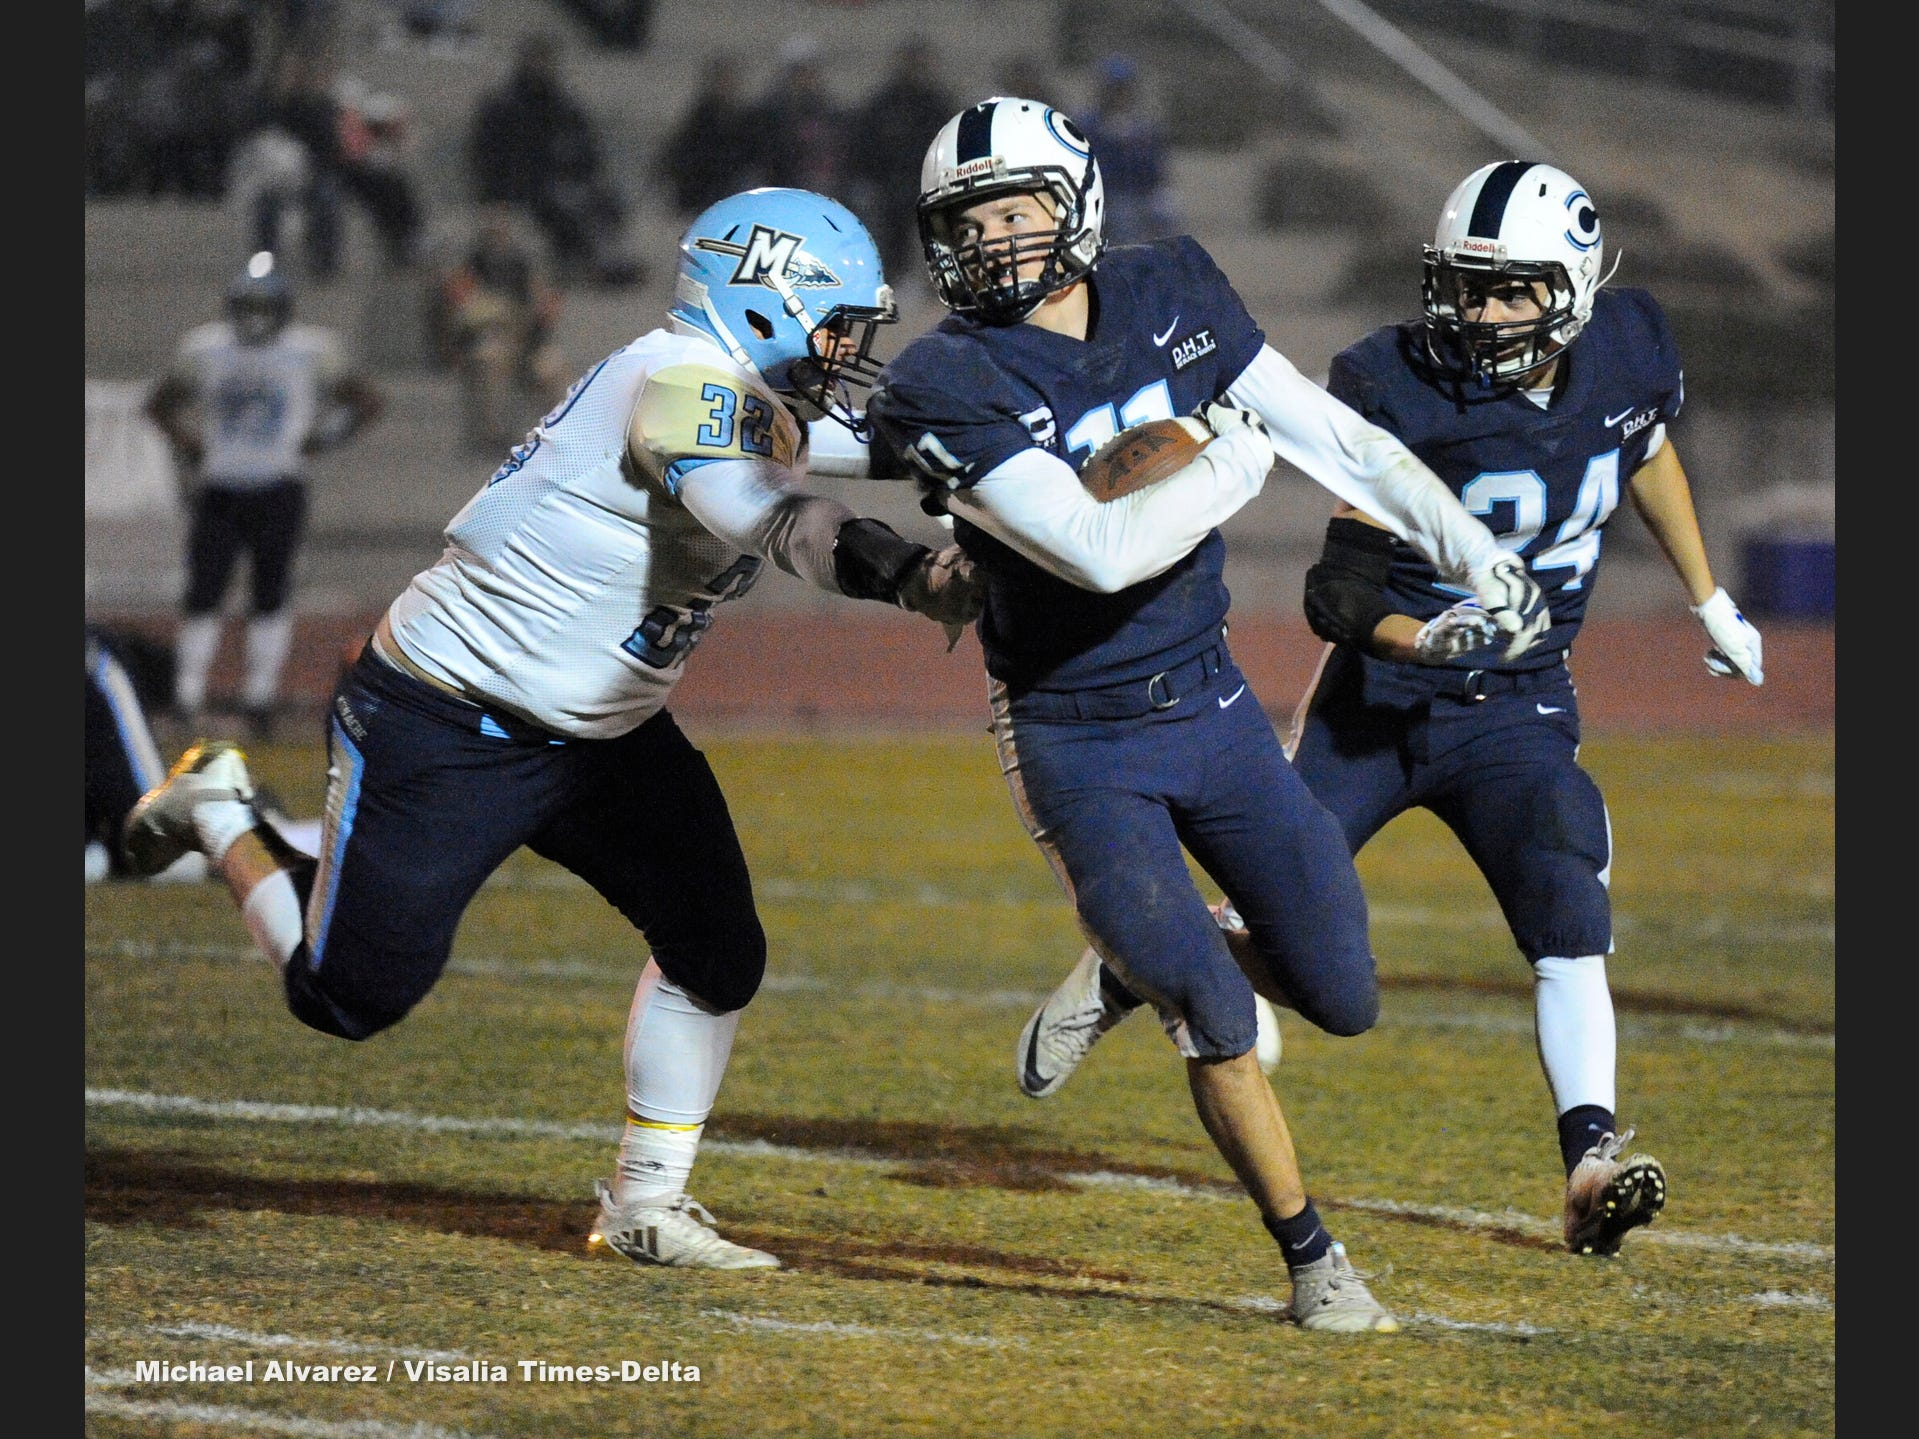 Central Valley Christian Simon Tevelde runs past the reaching arms of Monache Troy Carlos during the Central Section Division IV playoff on November 16, 2018.